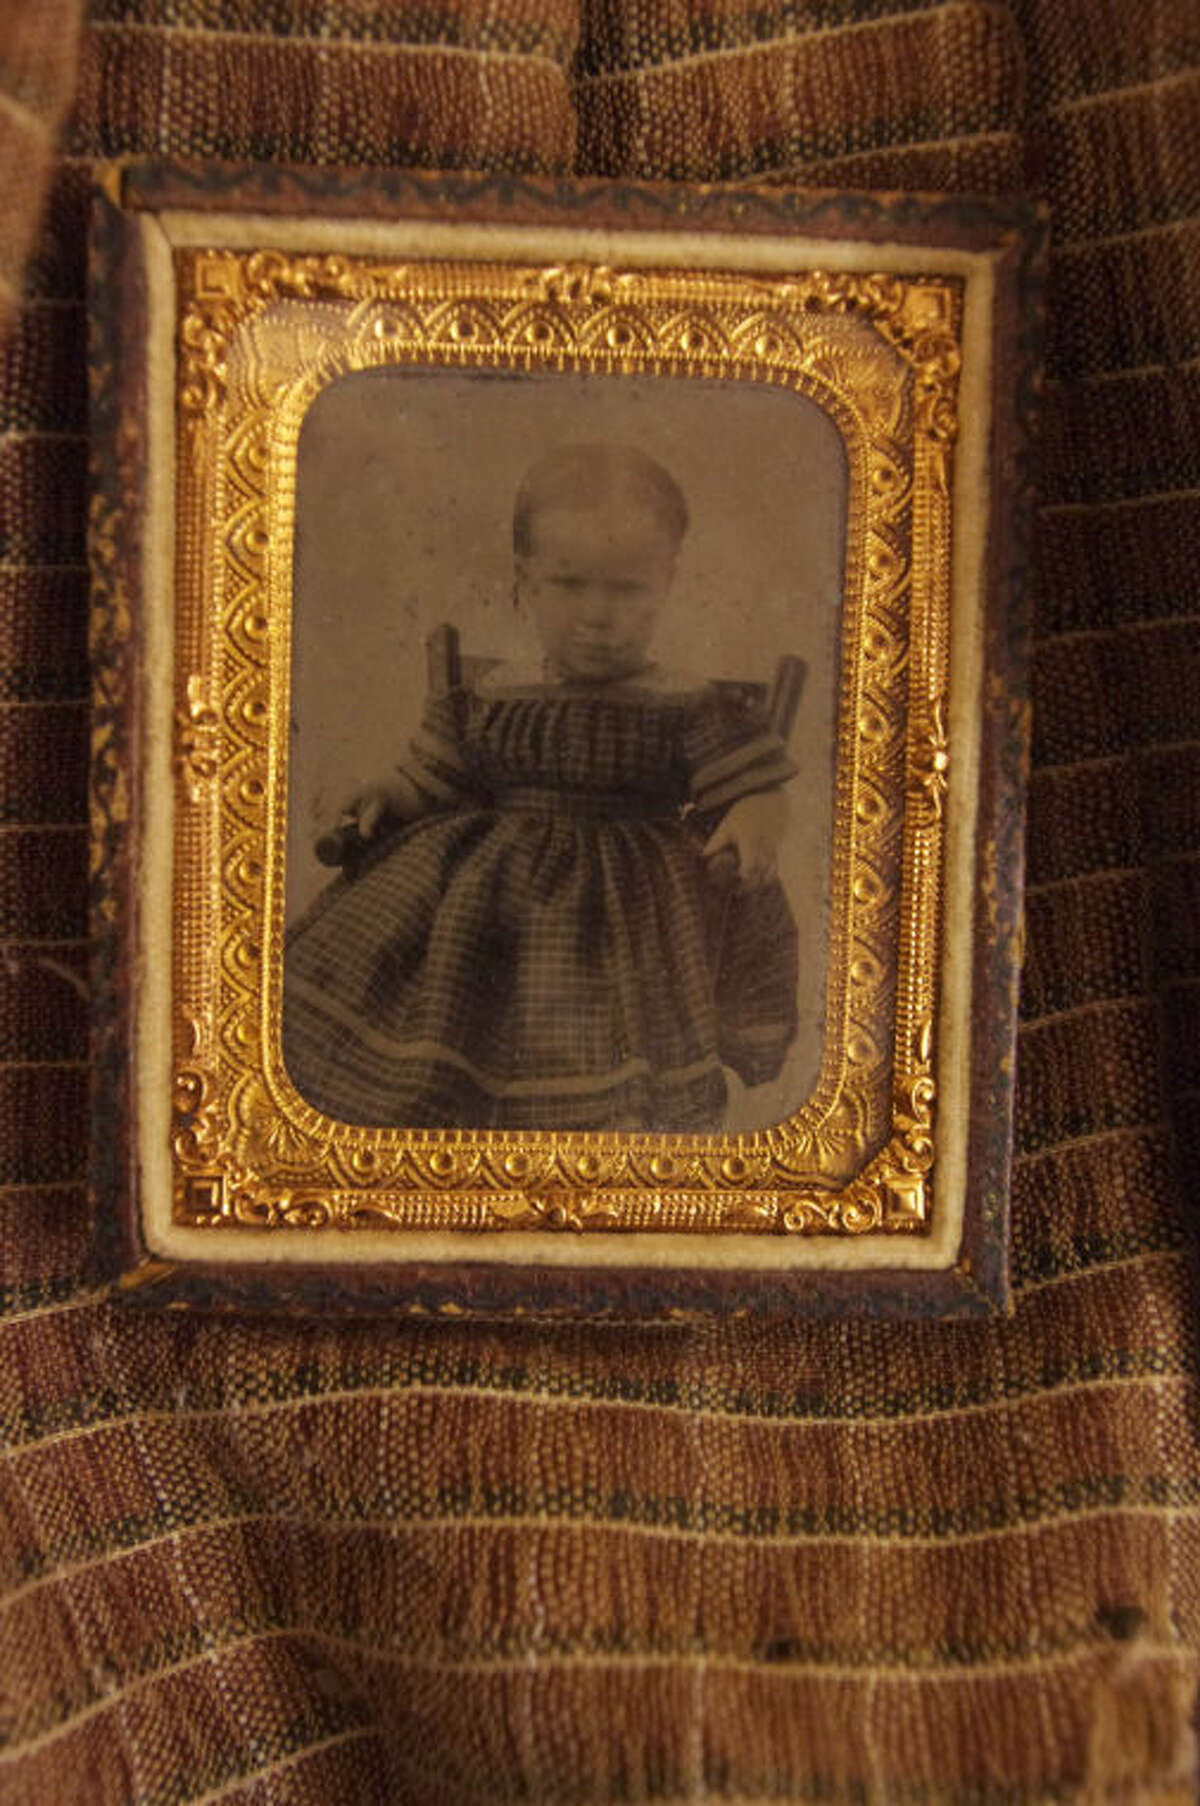 Stuart Frohm | for the Daily NewsJanie Gardner's father carried this framed image of her during the Civil War. In the image, donated to the Midland County Historical Society in the 1950s by Edith Garner Kelly, the child is wearing the dress on which the framed photo rests.